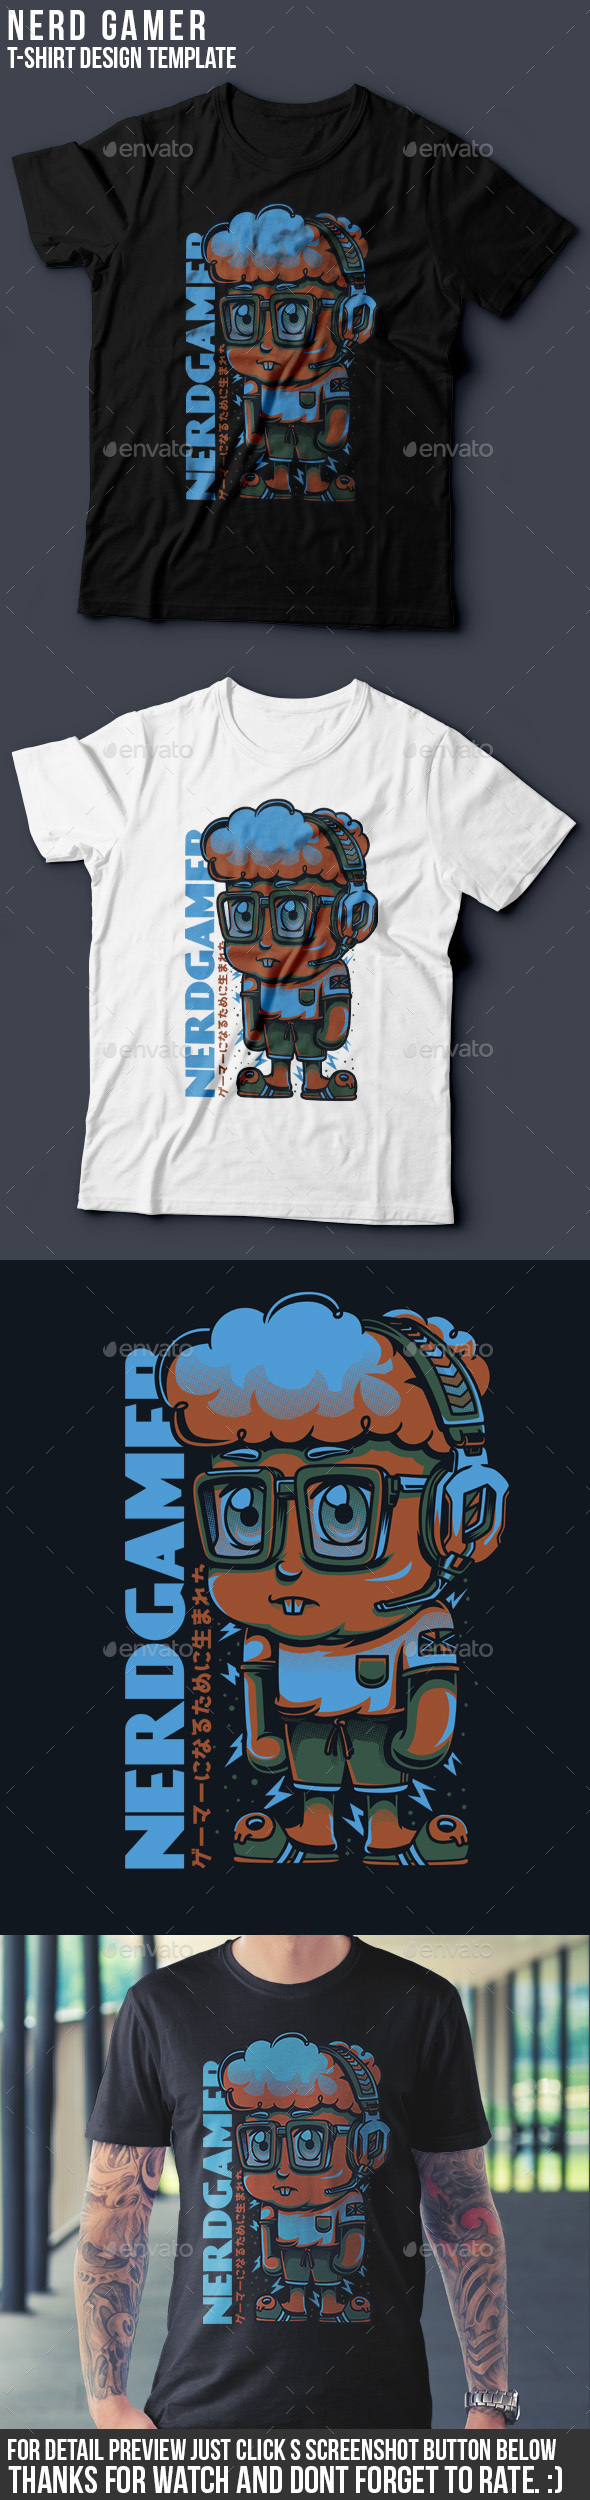 Nerd Gamer T-Shirt Design - Sports & Teams T-Shirts